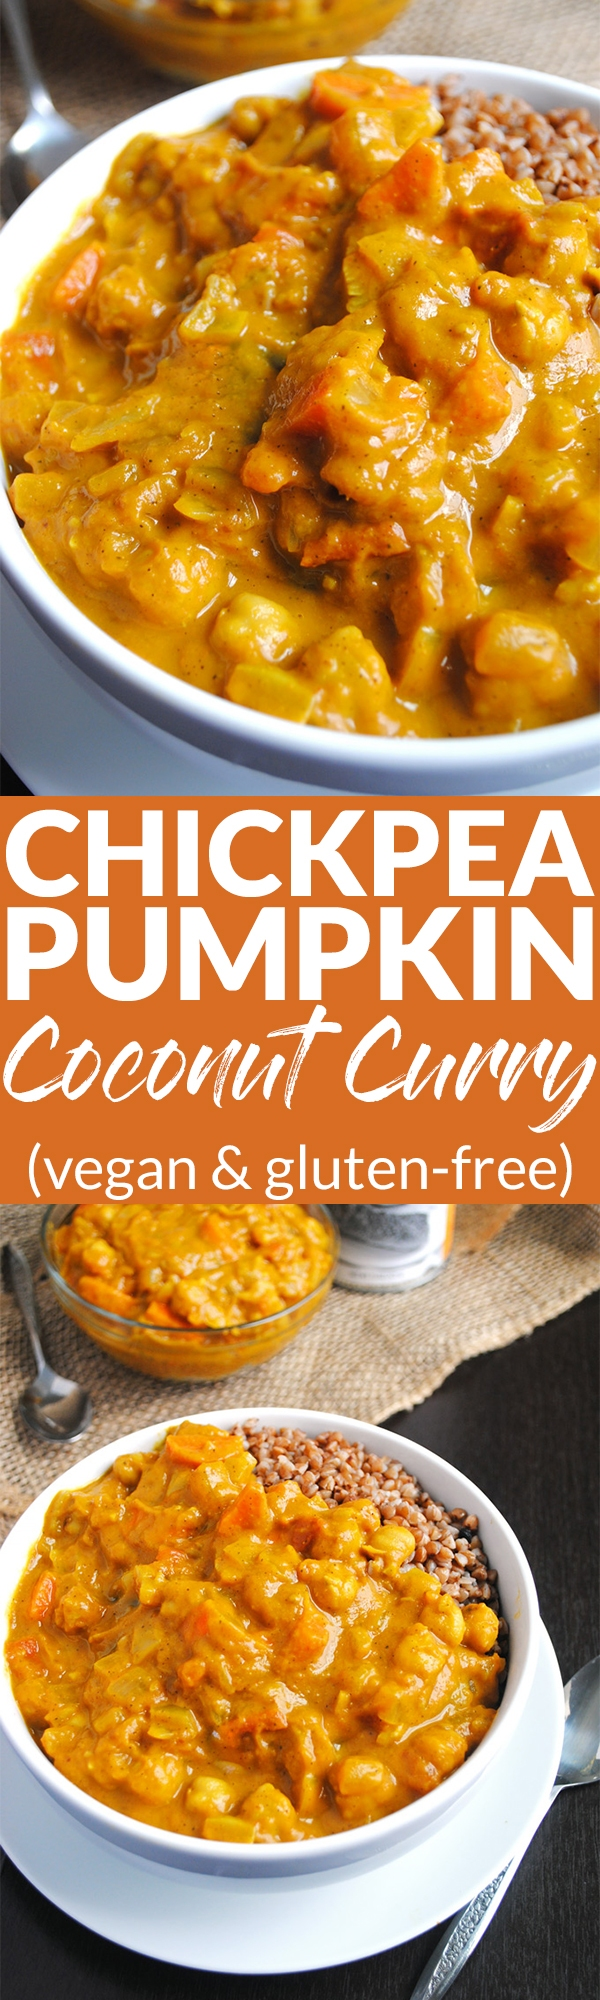 This easy Chickpea Pumpkin Coconut Curry is a delicious, comforting soup for fall and winter and will warm you up from the inside out! (vegan & gluten-free)